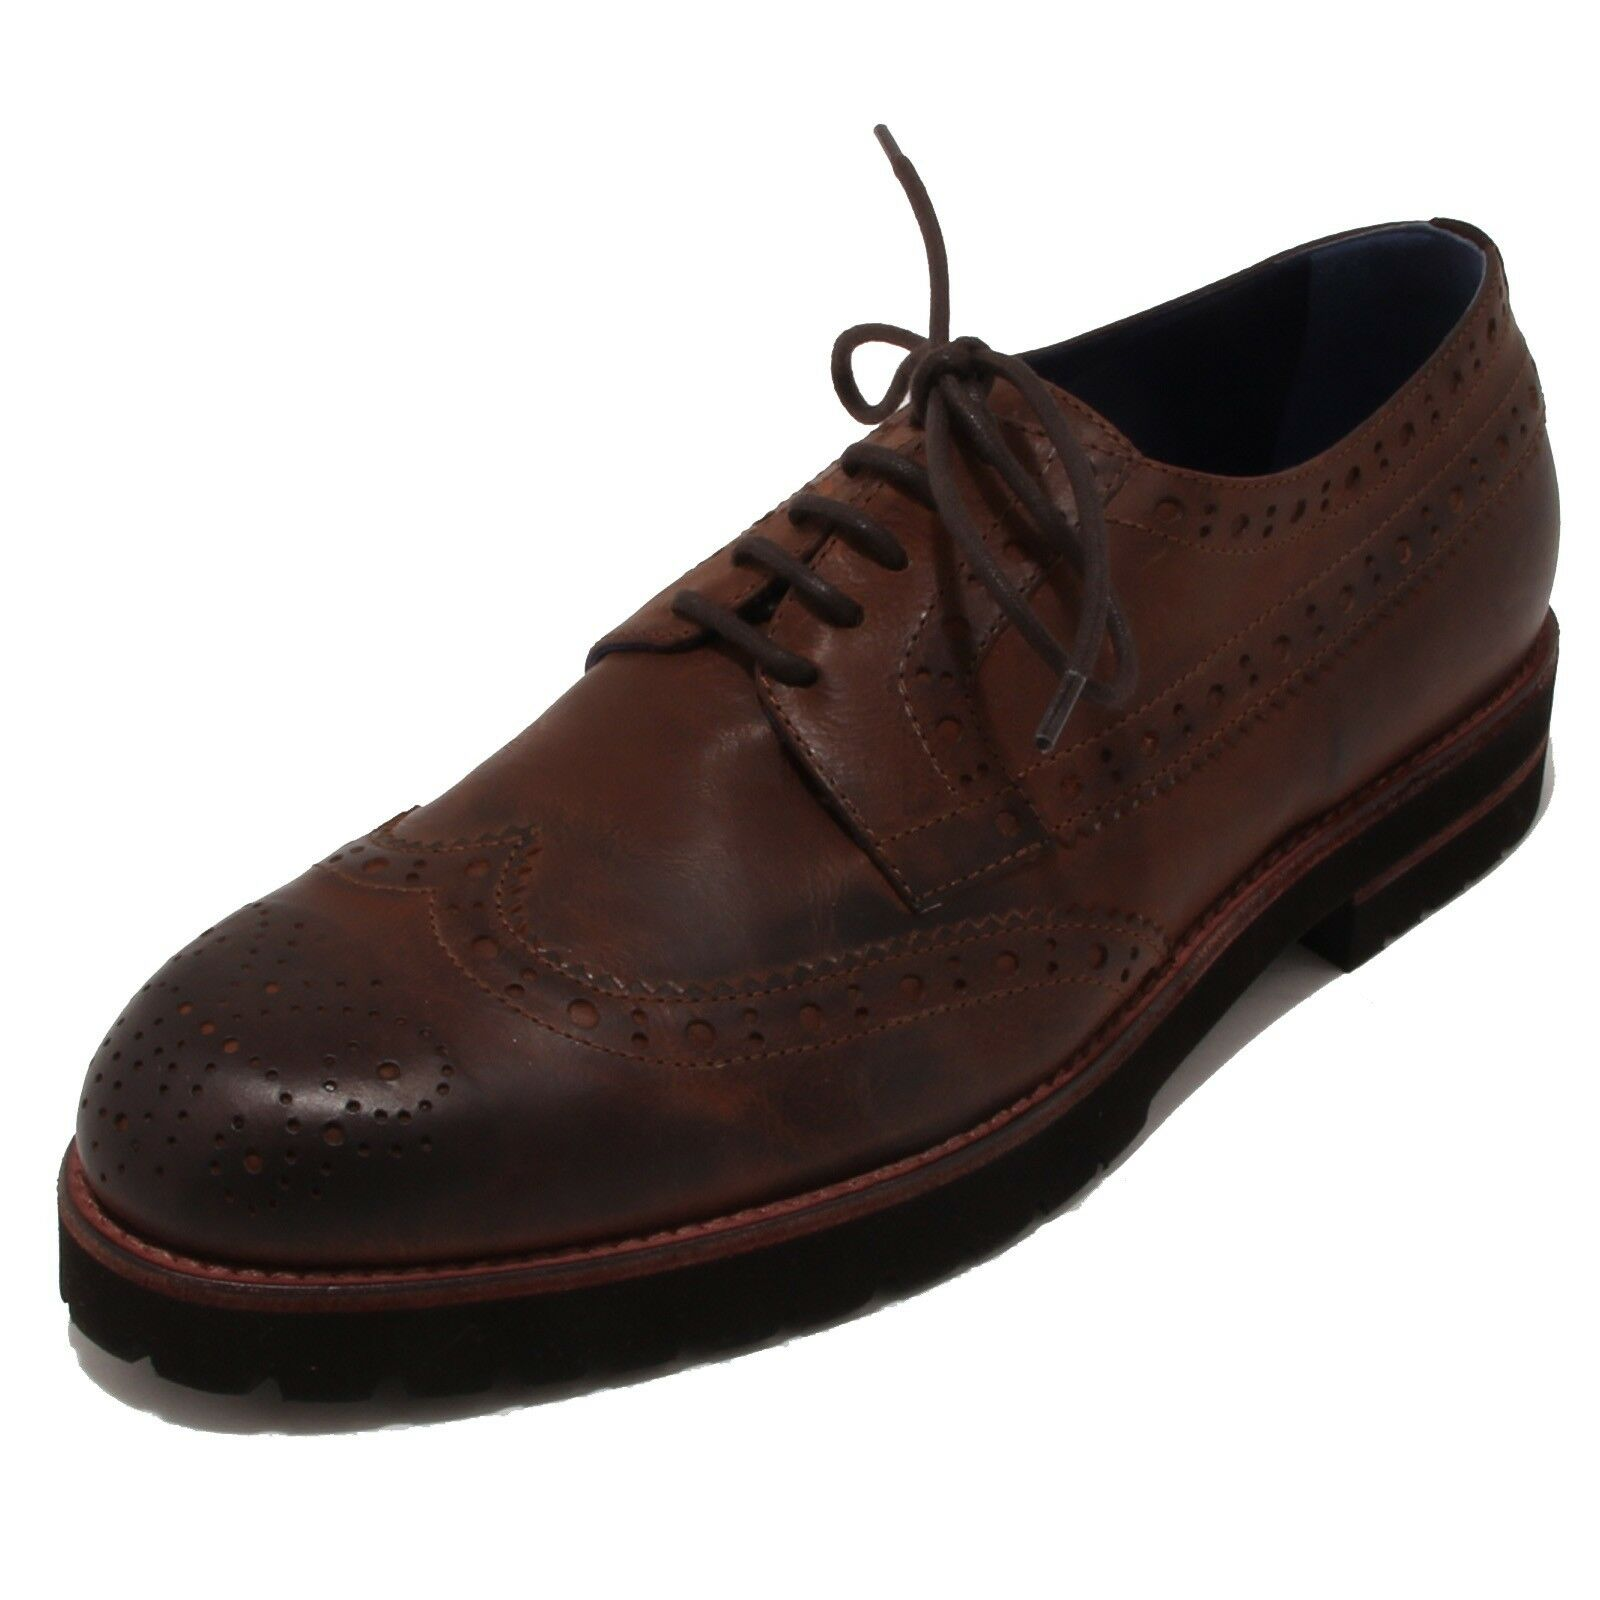 4220p shoes Laced One 8 One Brown Men shoes Men